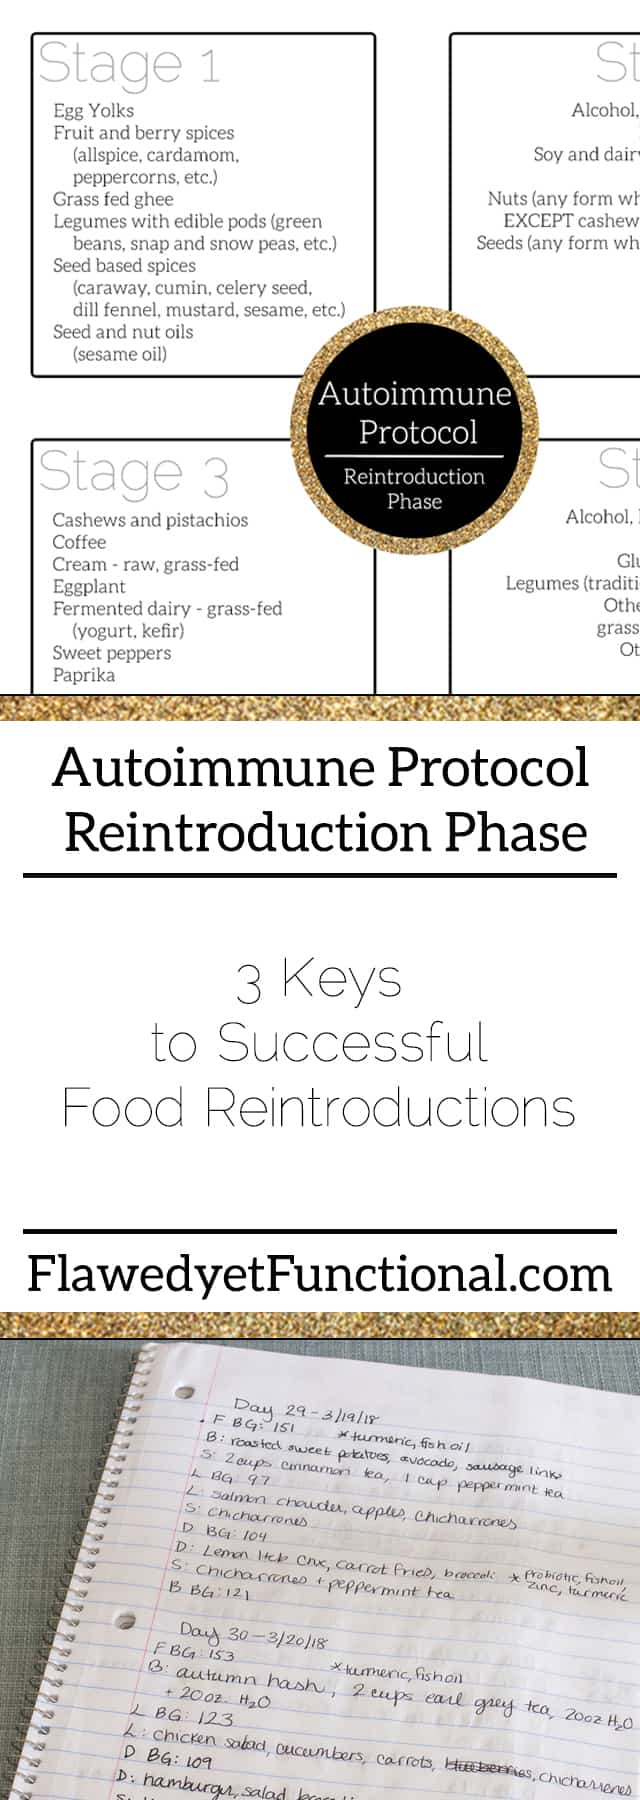 Autoimmune protocol reintroduction phase